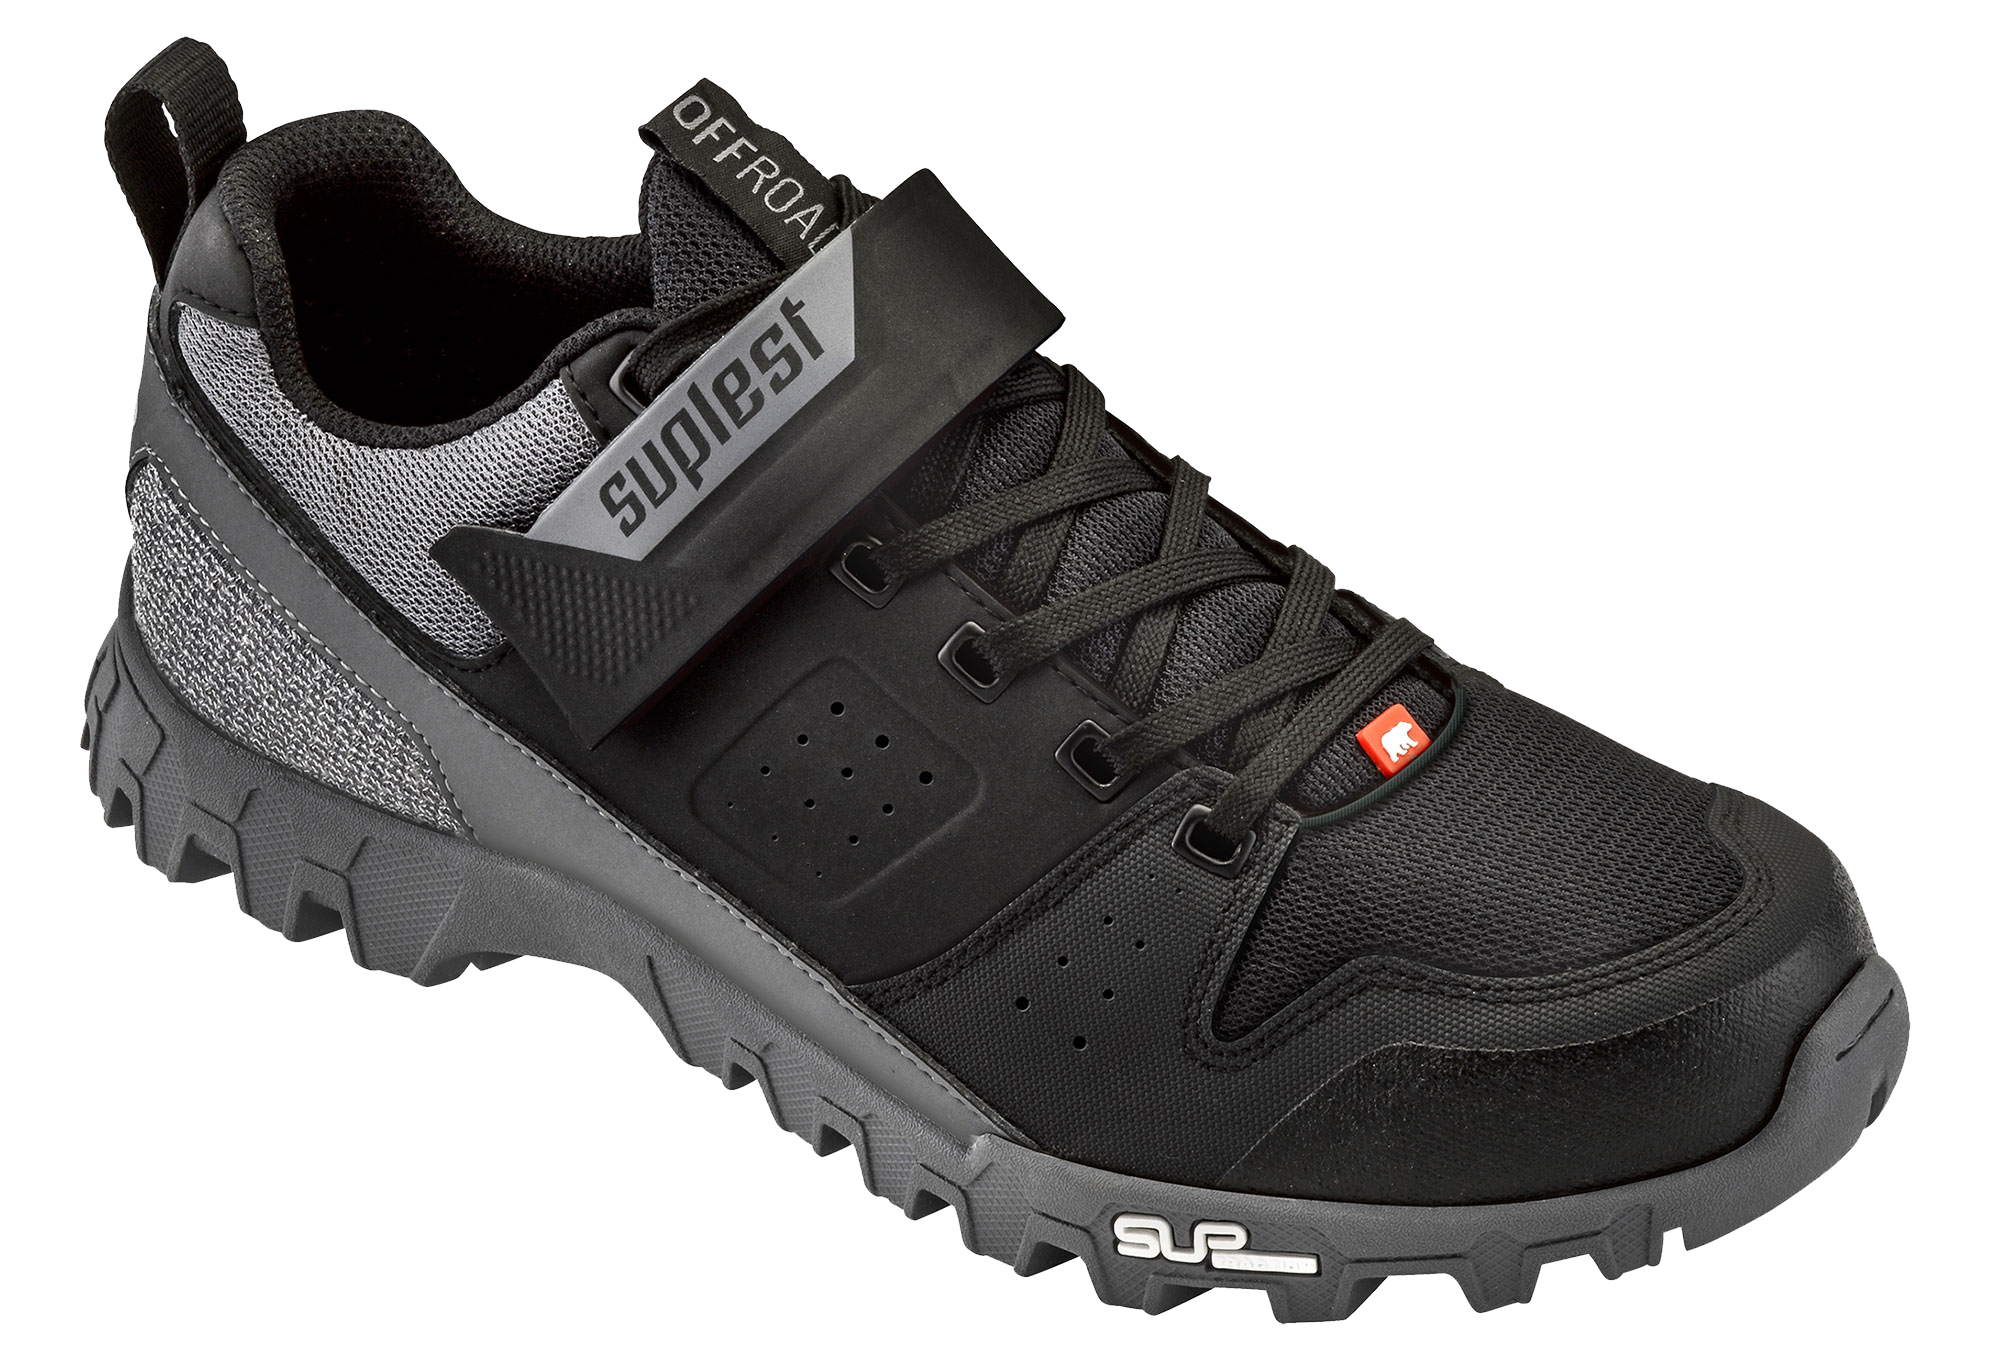 856e5ef9eac SUPLEST OFFROAD SERIES MTB Shoes Black Grey